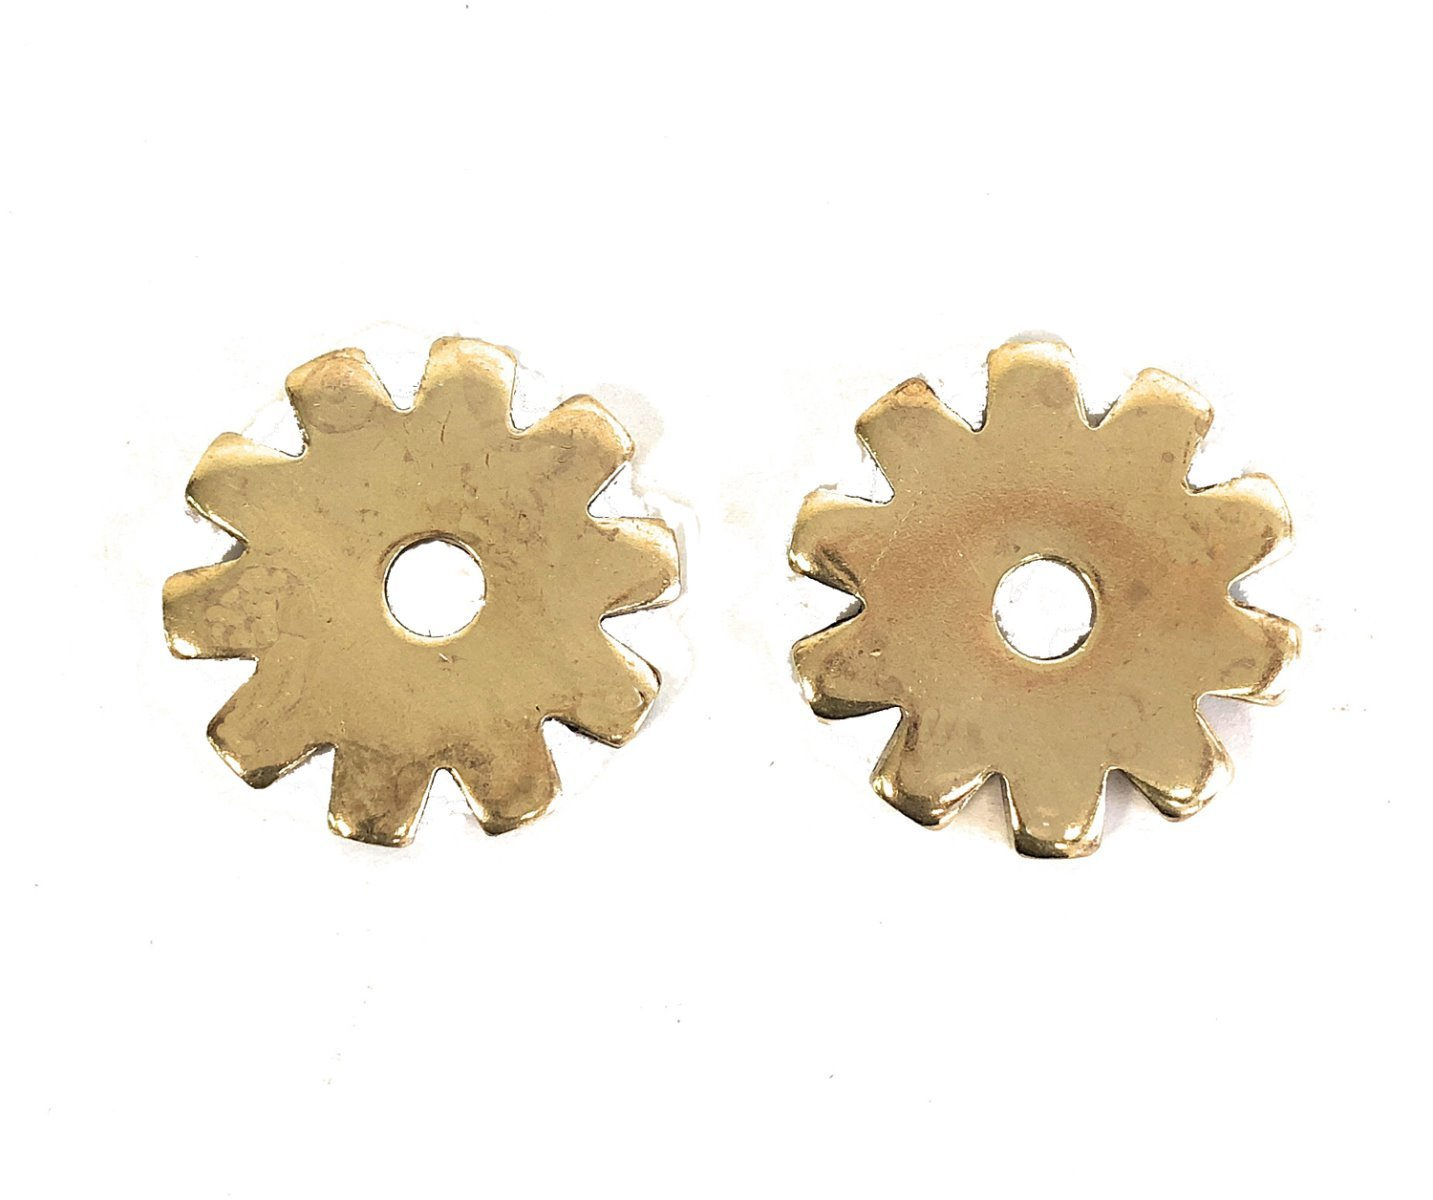 AJ Tack Wholesale Brass Spur Rowels 10 Point 1 1/16 Inch Sold in Pair Cowboy Boots Accessories